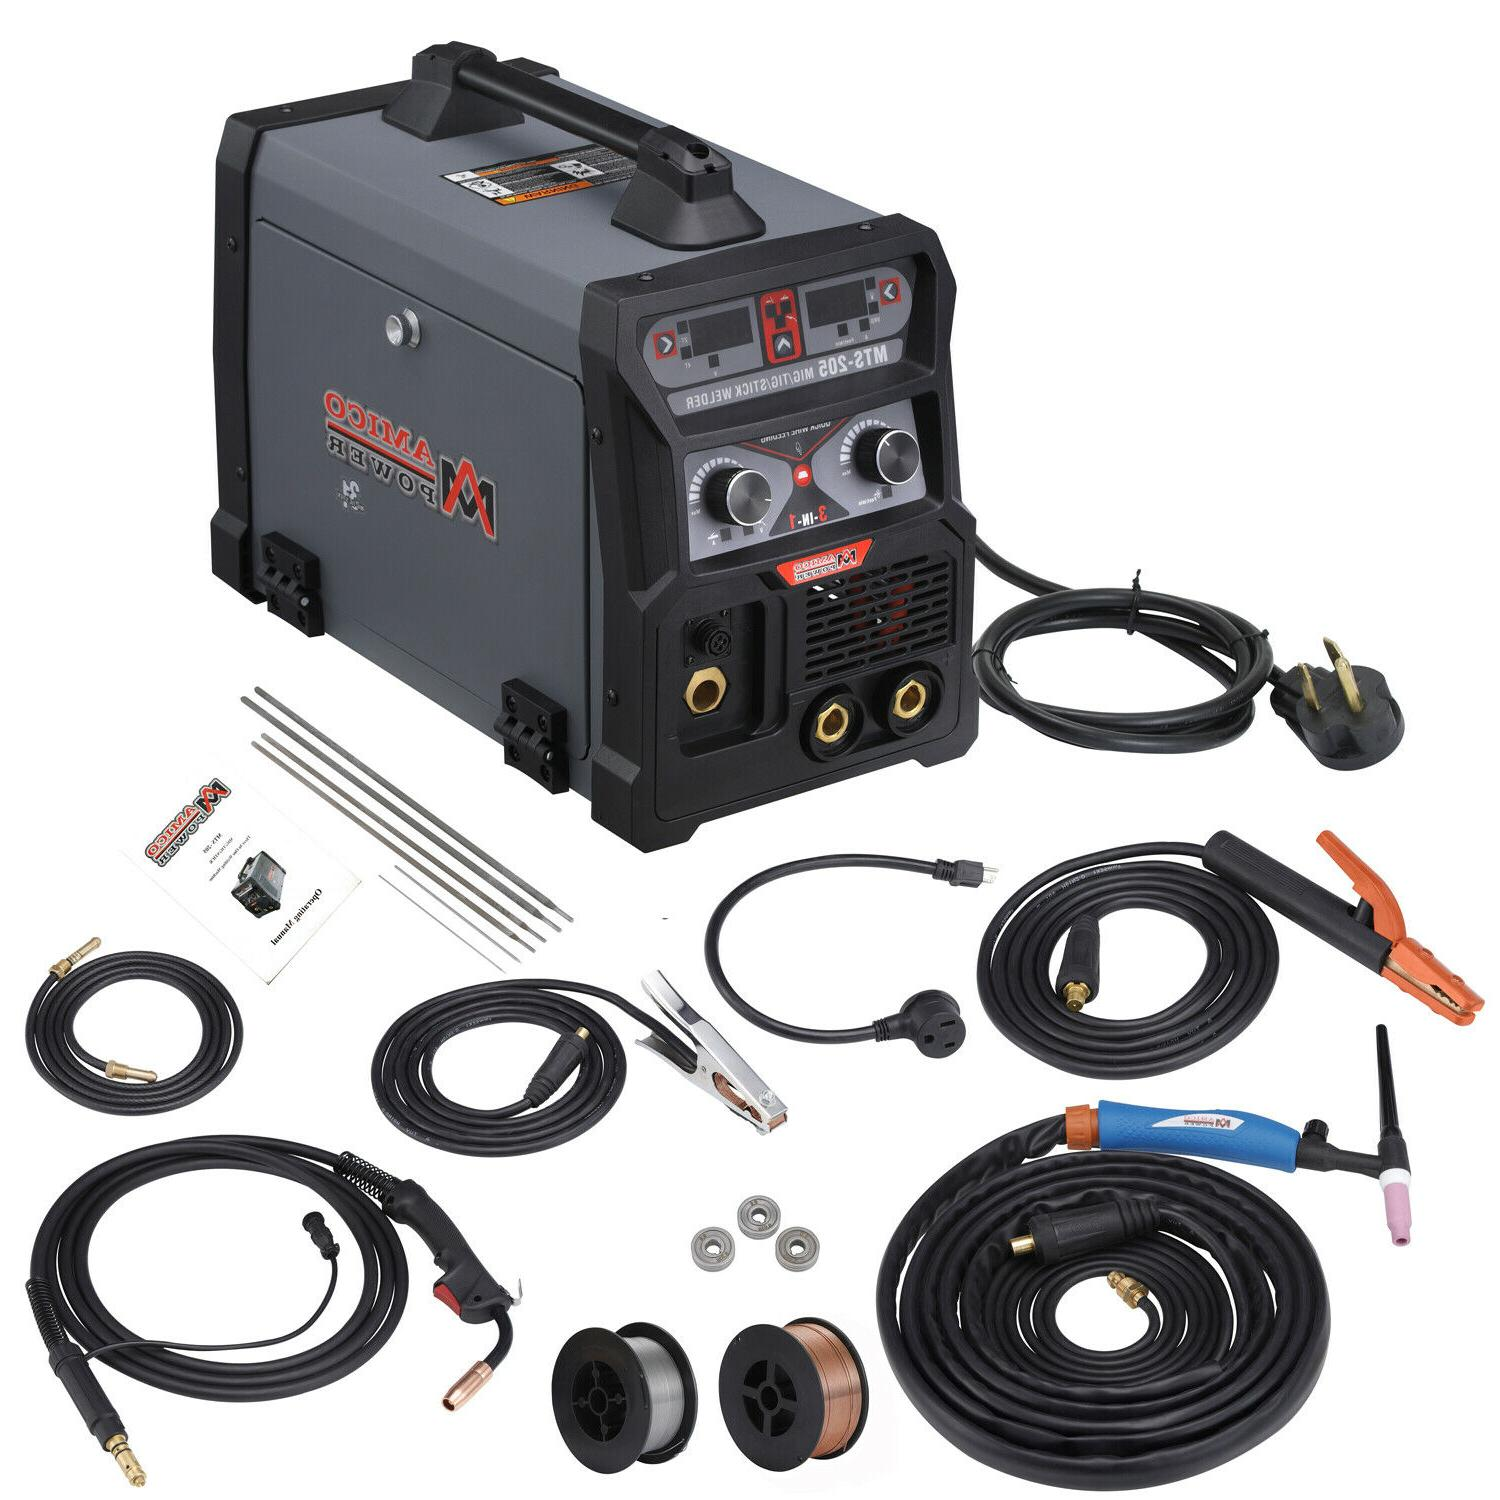 mts 205 amp mig wire feed welder